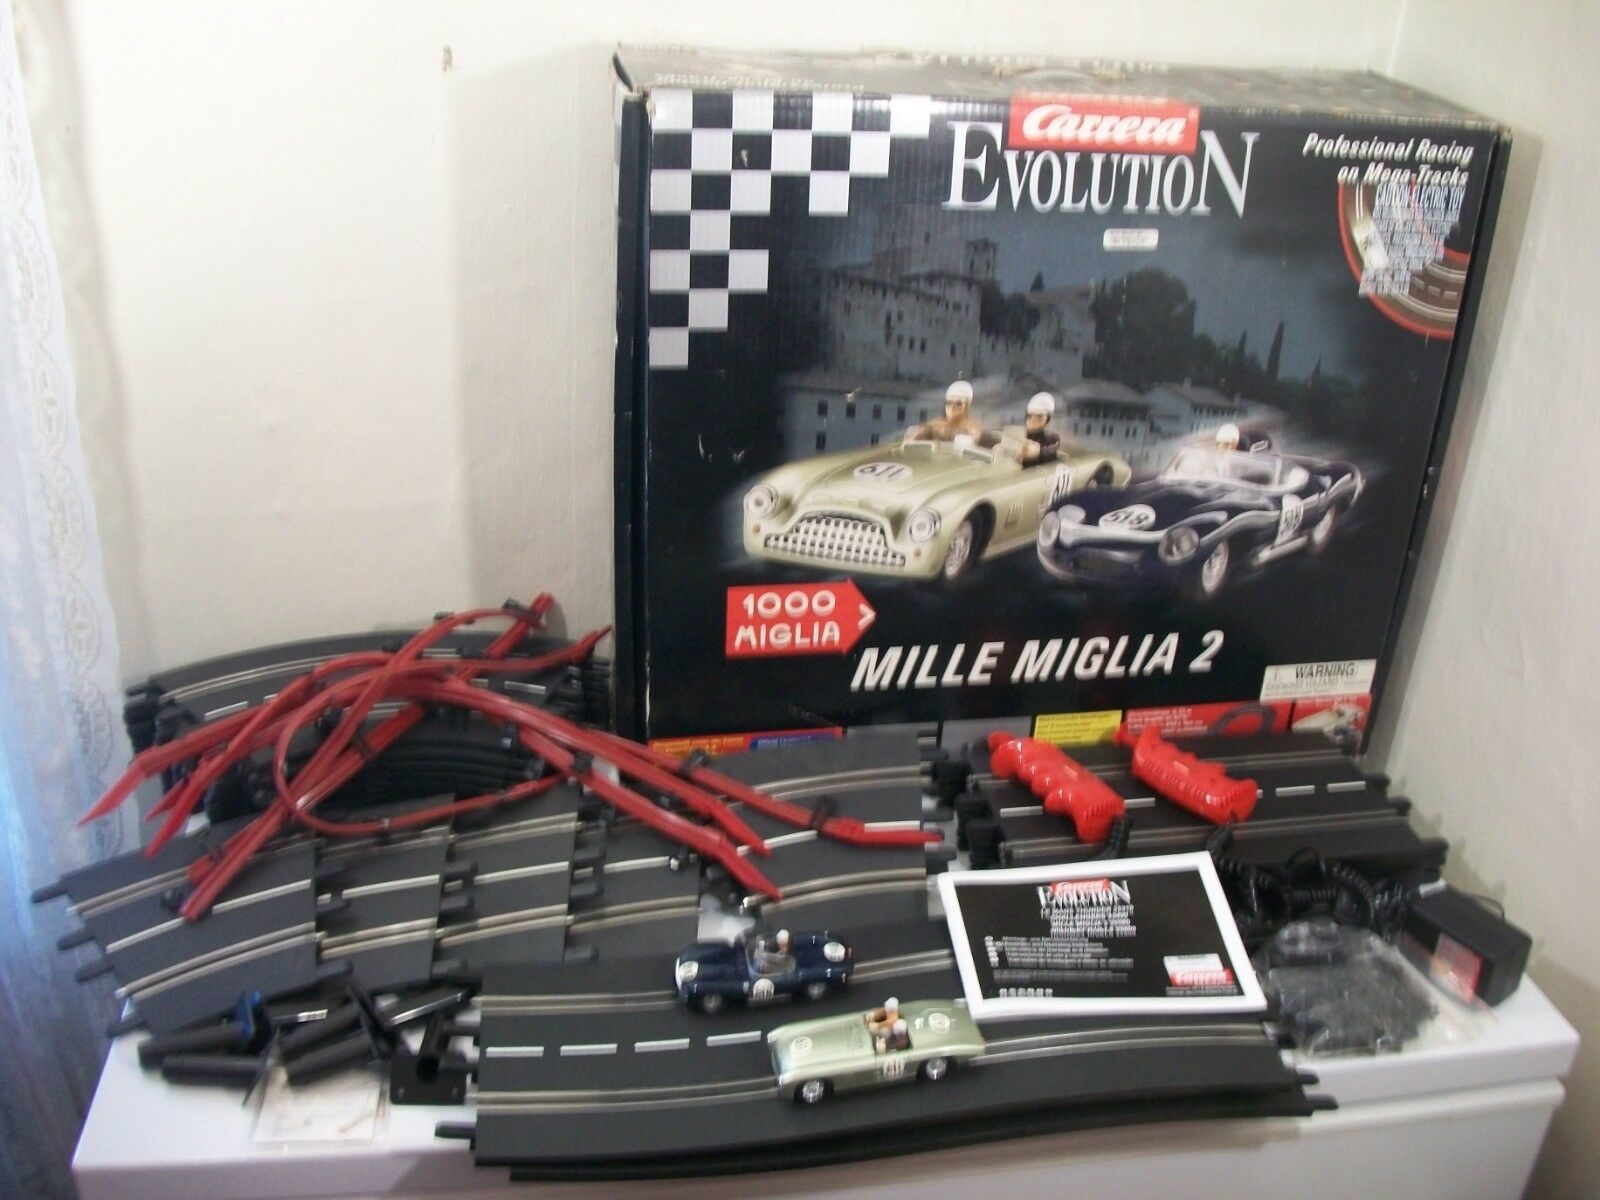 Carrera Evolution Mille Miglia 2 Slot Car Set 1 32 complet avec 4 voitures